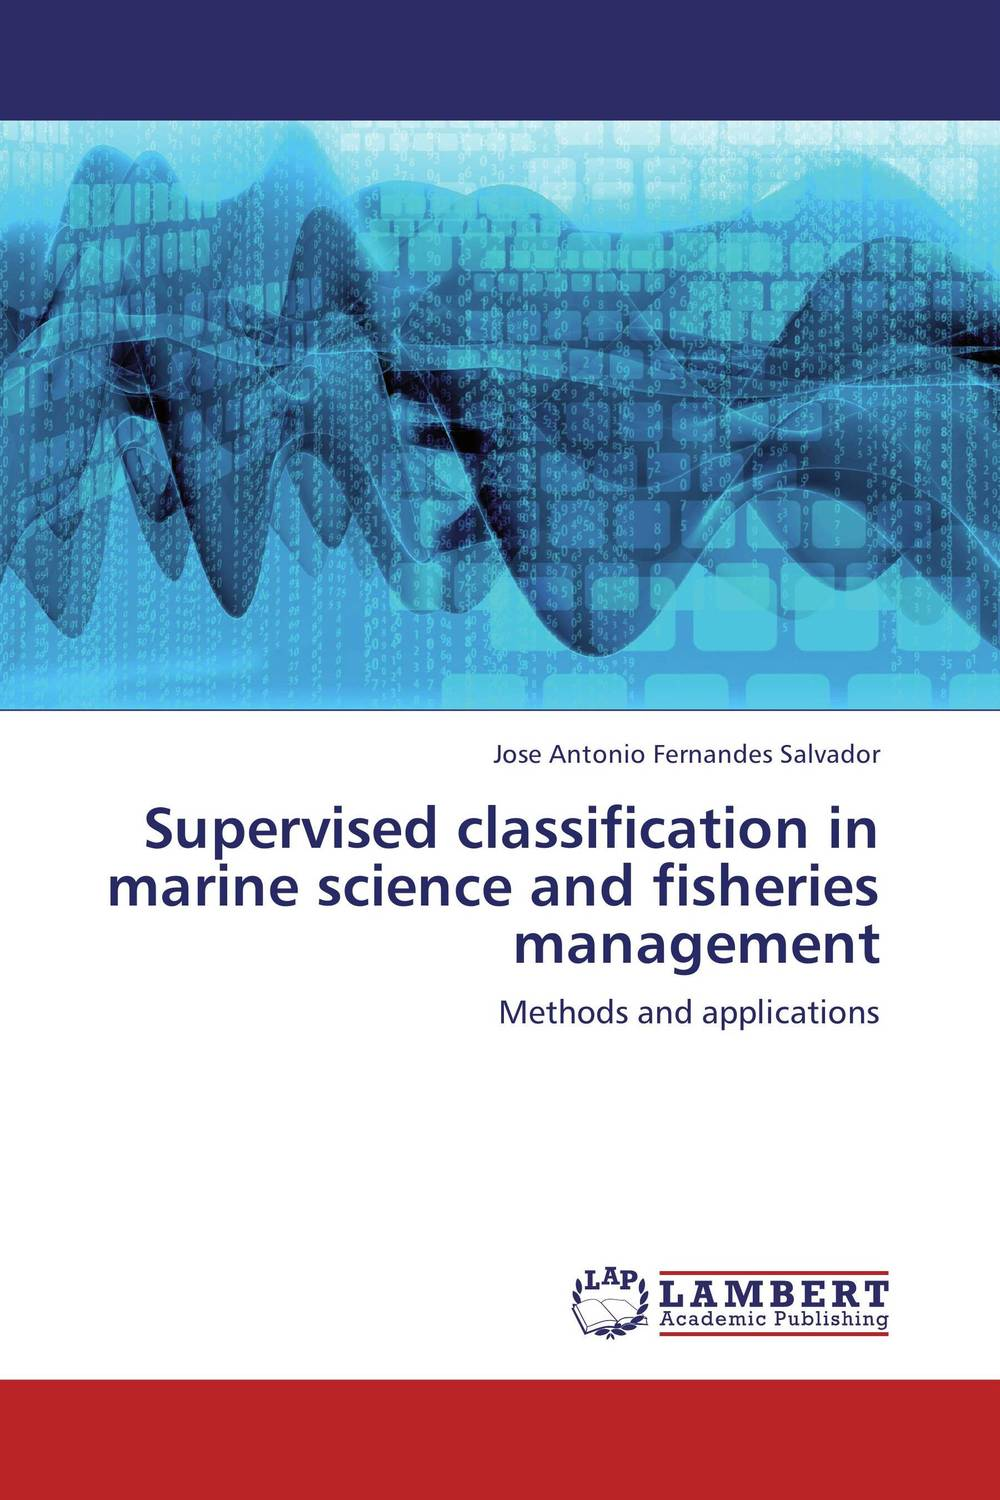 Supervised classification in marine science and fisheries management modern security methods in applied computer science